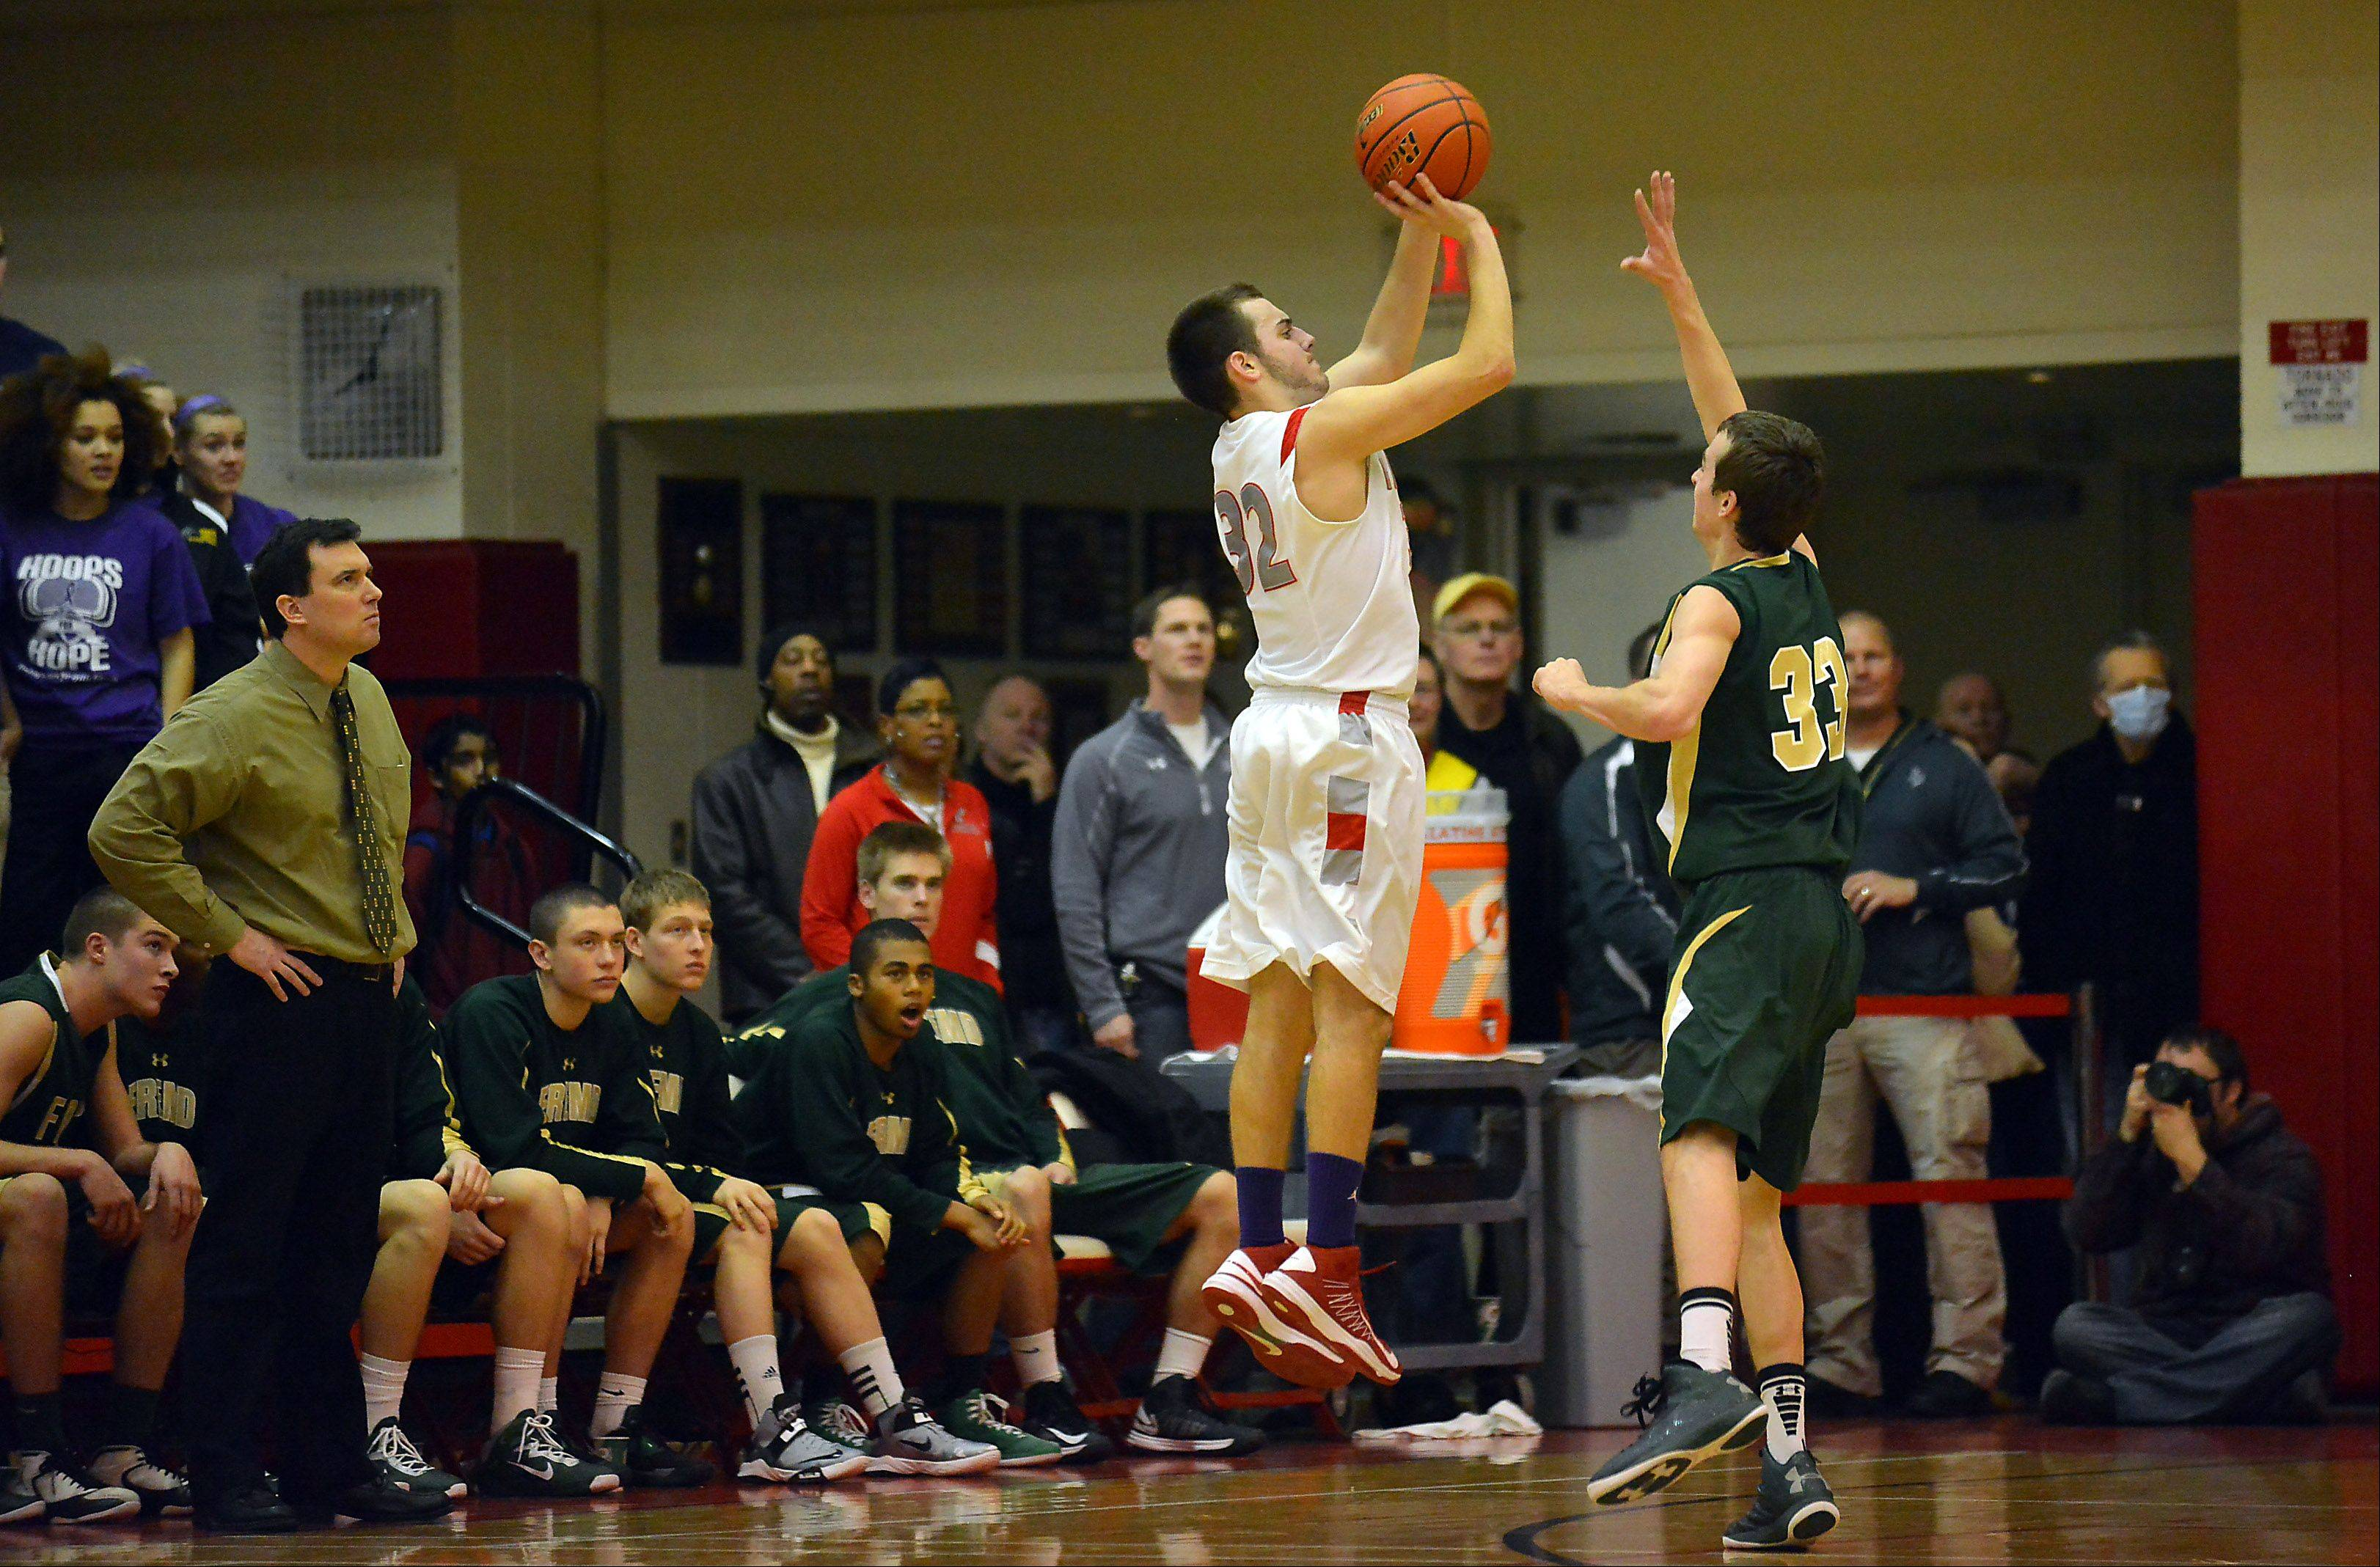 Mark Welsh/mwelsh@dailyherald.comPalatine's Greg Grana shoots over Fremd's Sean Benka as he attempts to block the shot in the boys varsity matchup at Palatine High School on Friday.